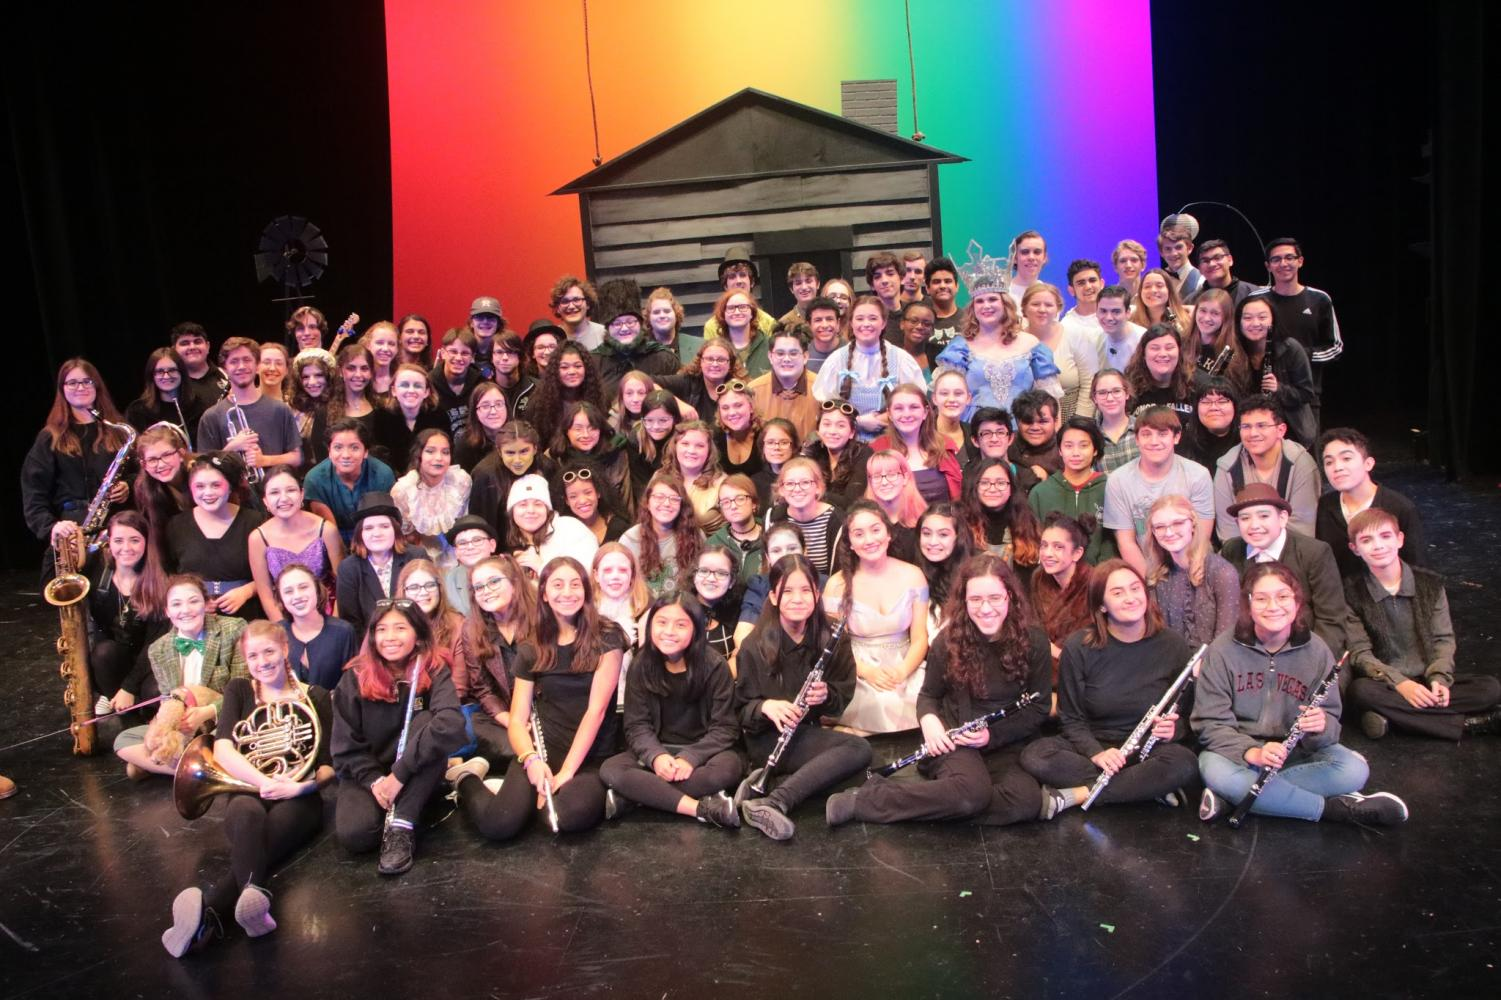 The OLTD cast, crew, and pit had an amazing performance